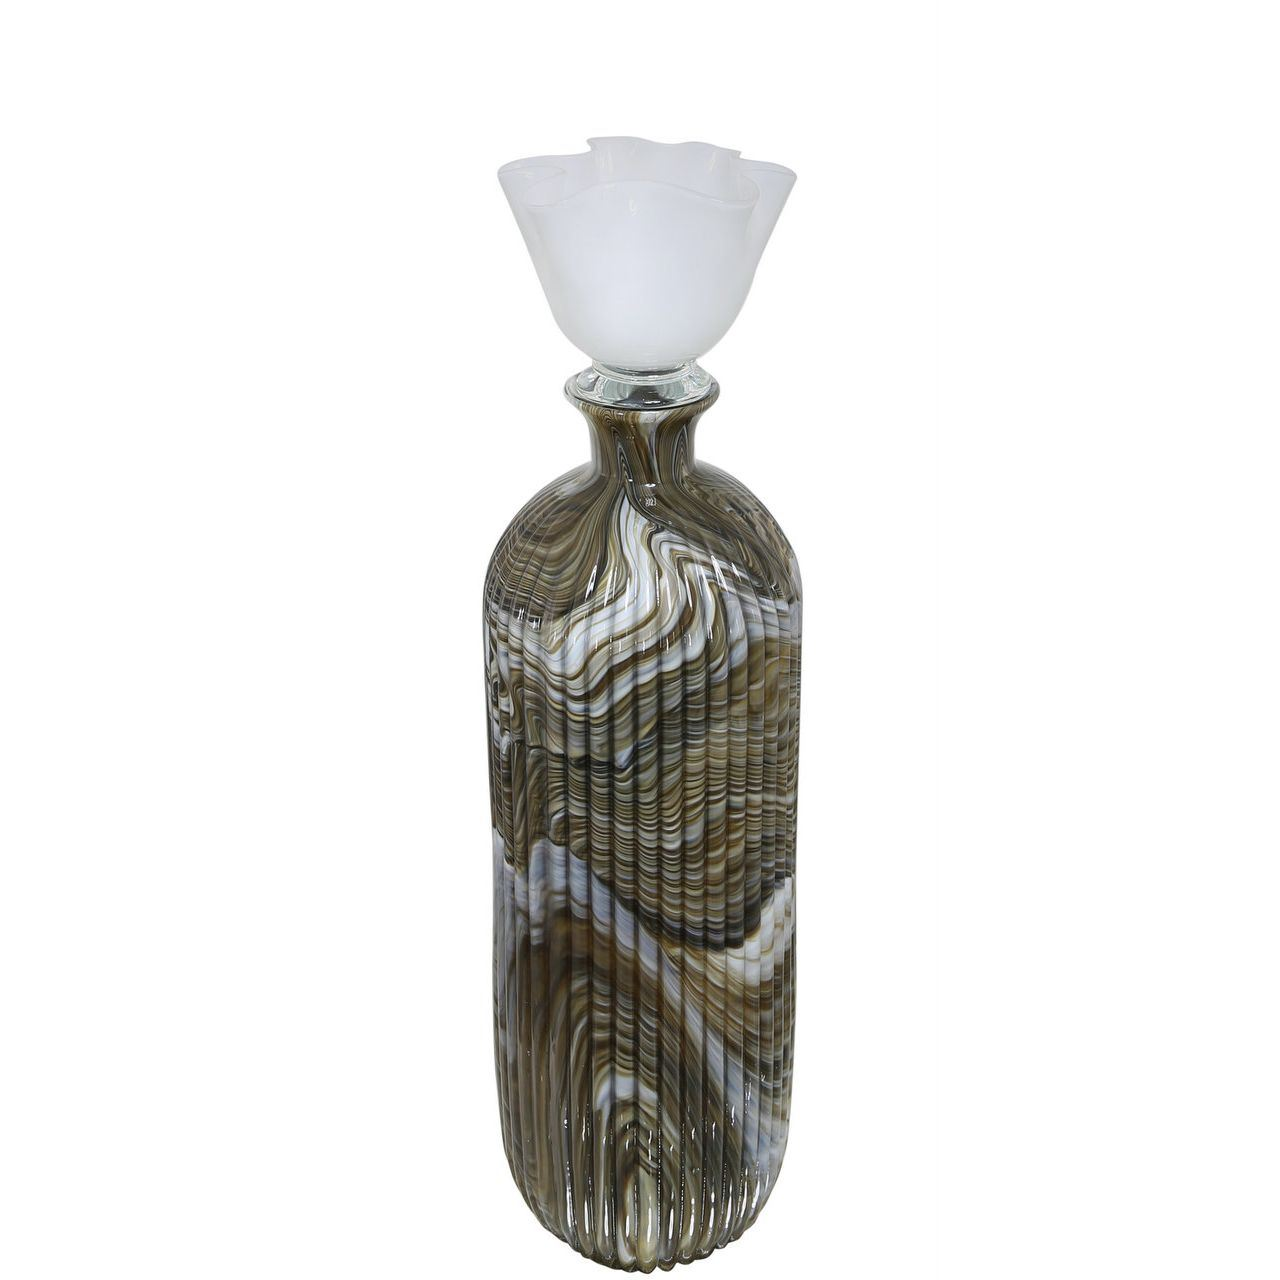 54.5cm Glass Bottle With Lid